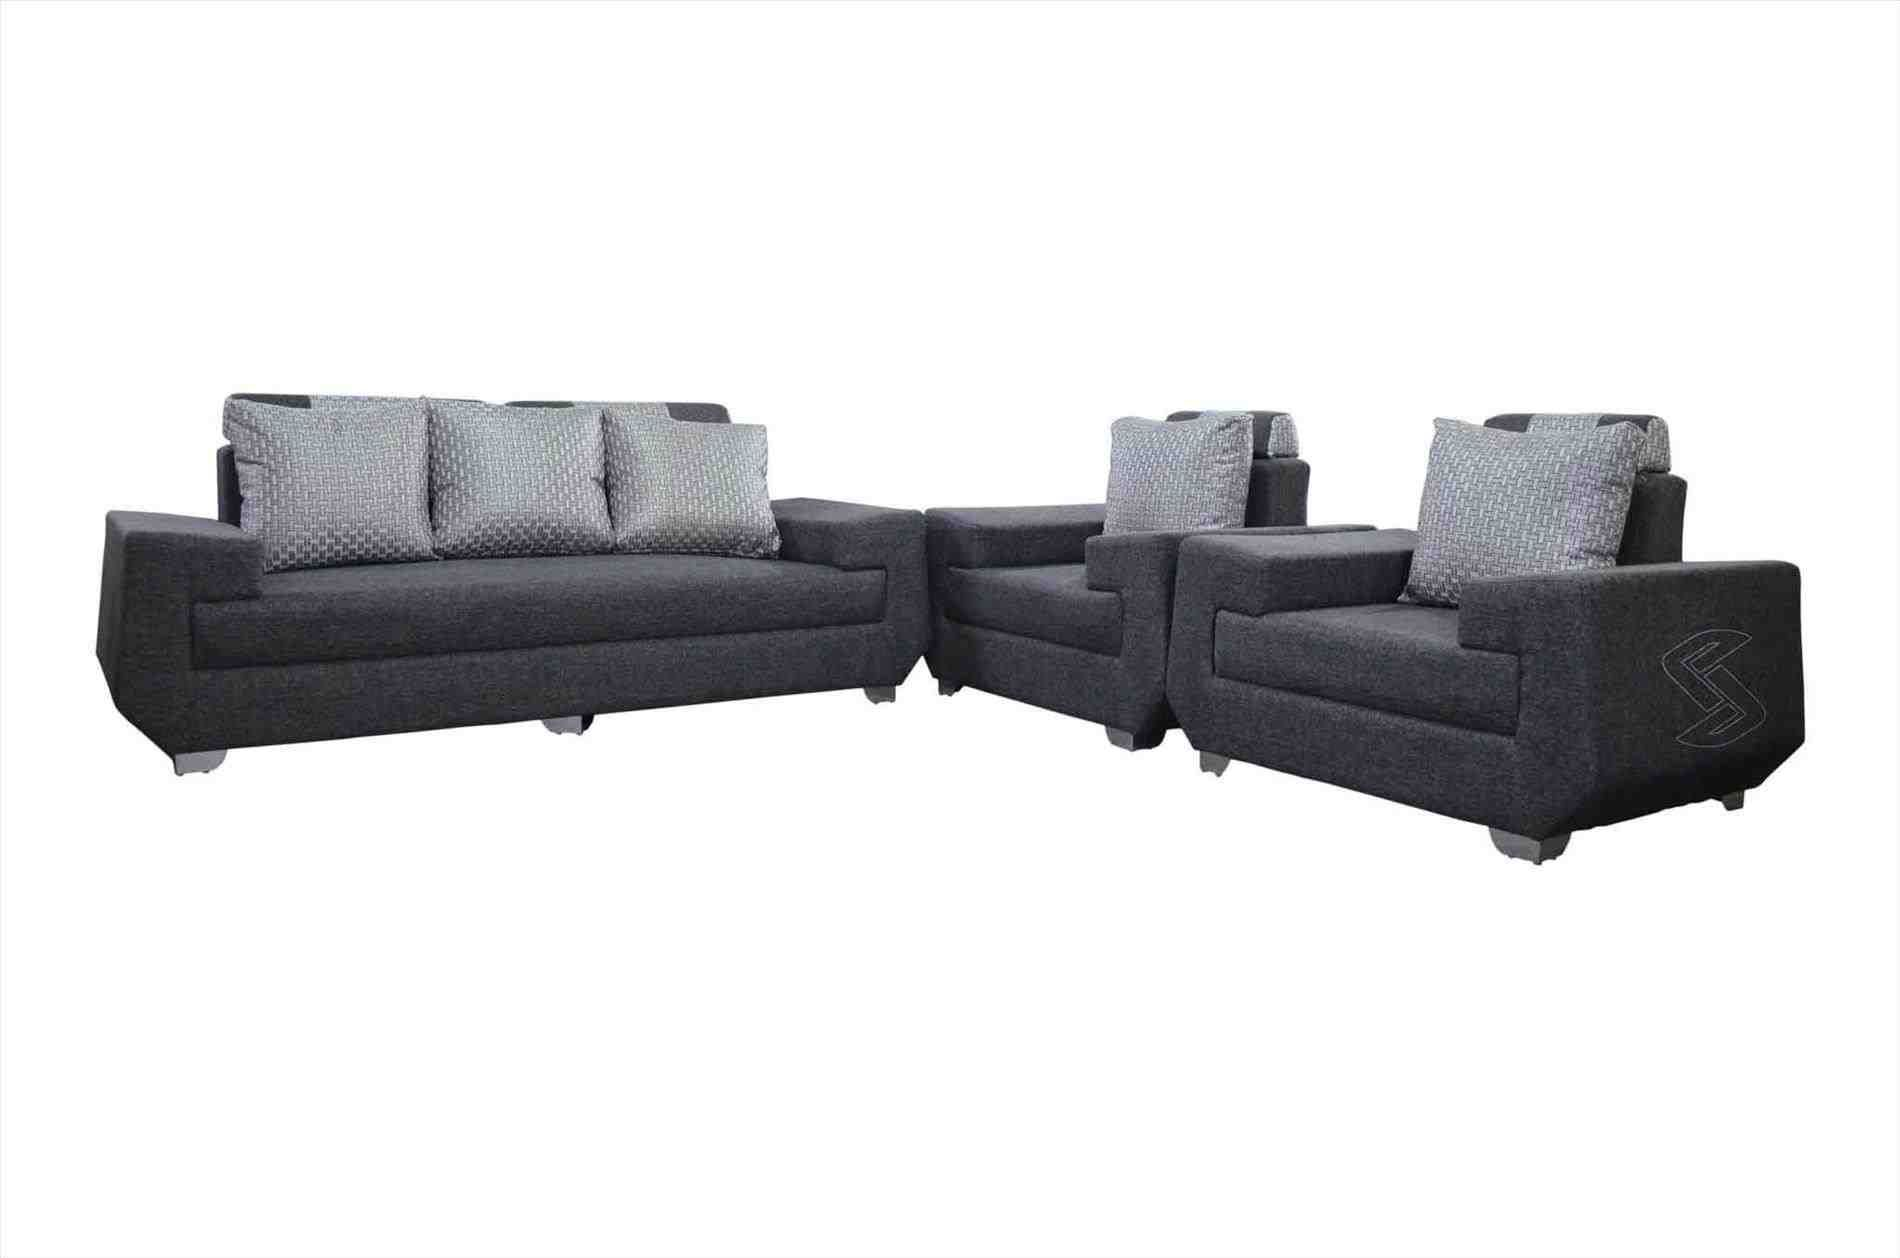 Cheap Sofa Sets Buy Furniture Online In Hyderabad Sofa Sets For Living Room Set